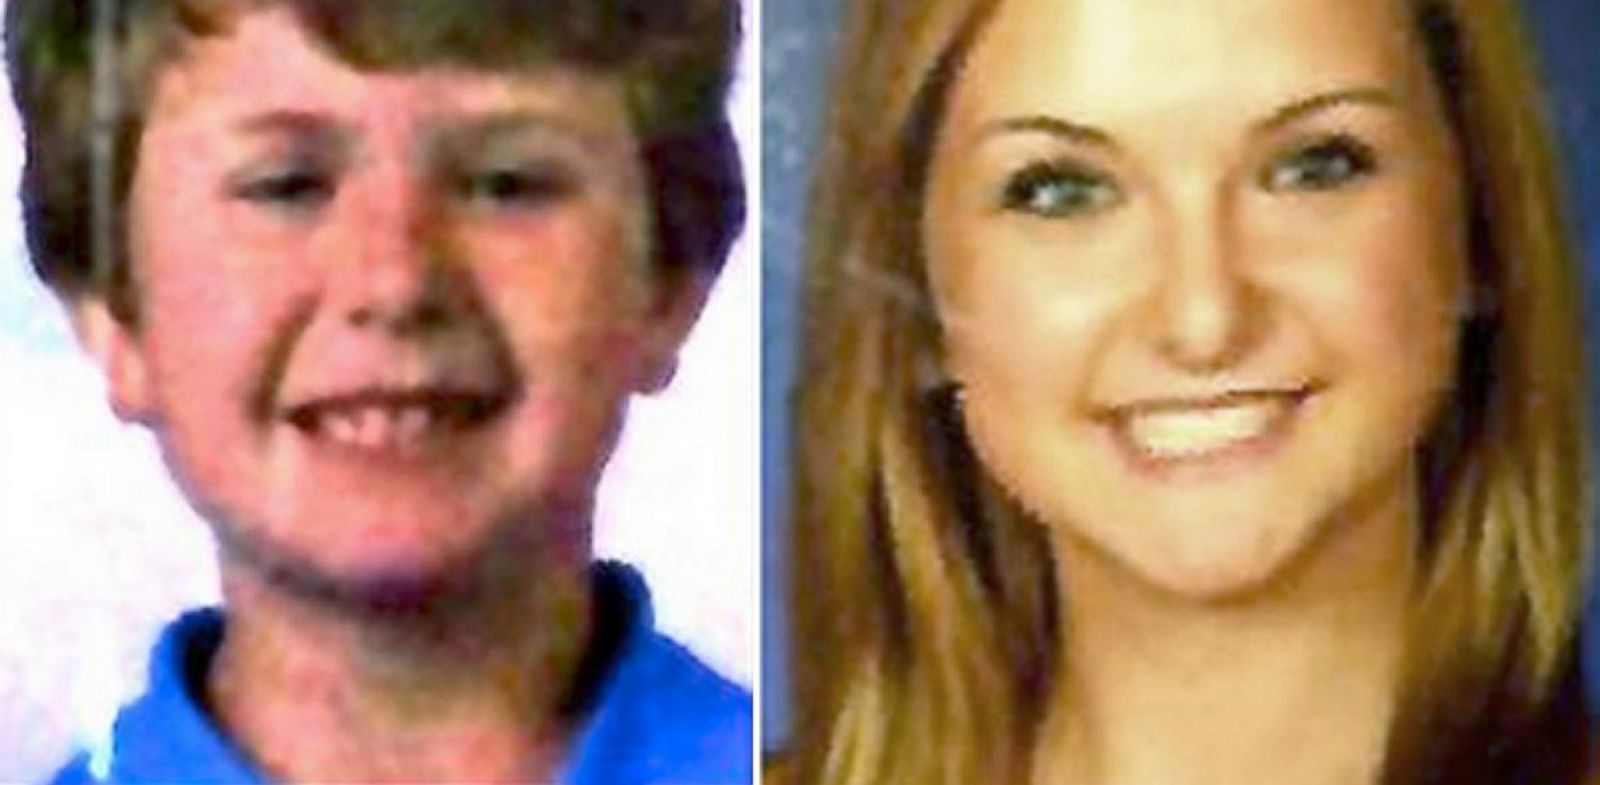 PHOTO: The body of Ethan Anderson, left, was positively identified by officials Friday. His sister, Hannah Anderson, is still missing.